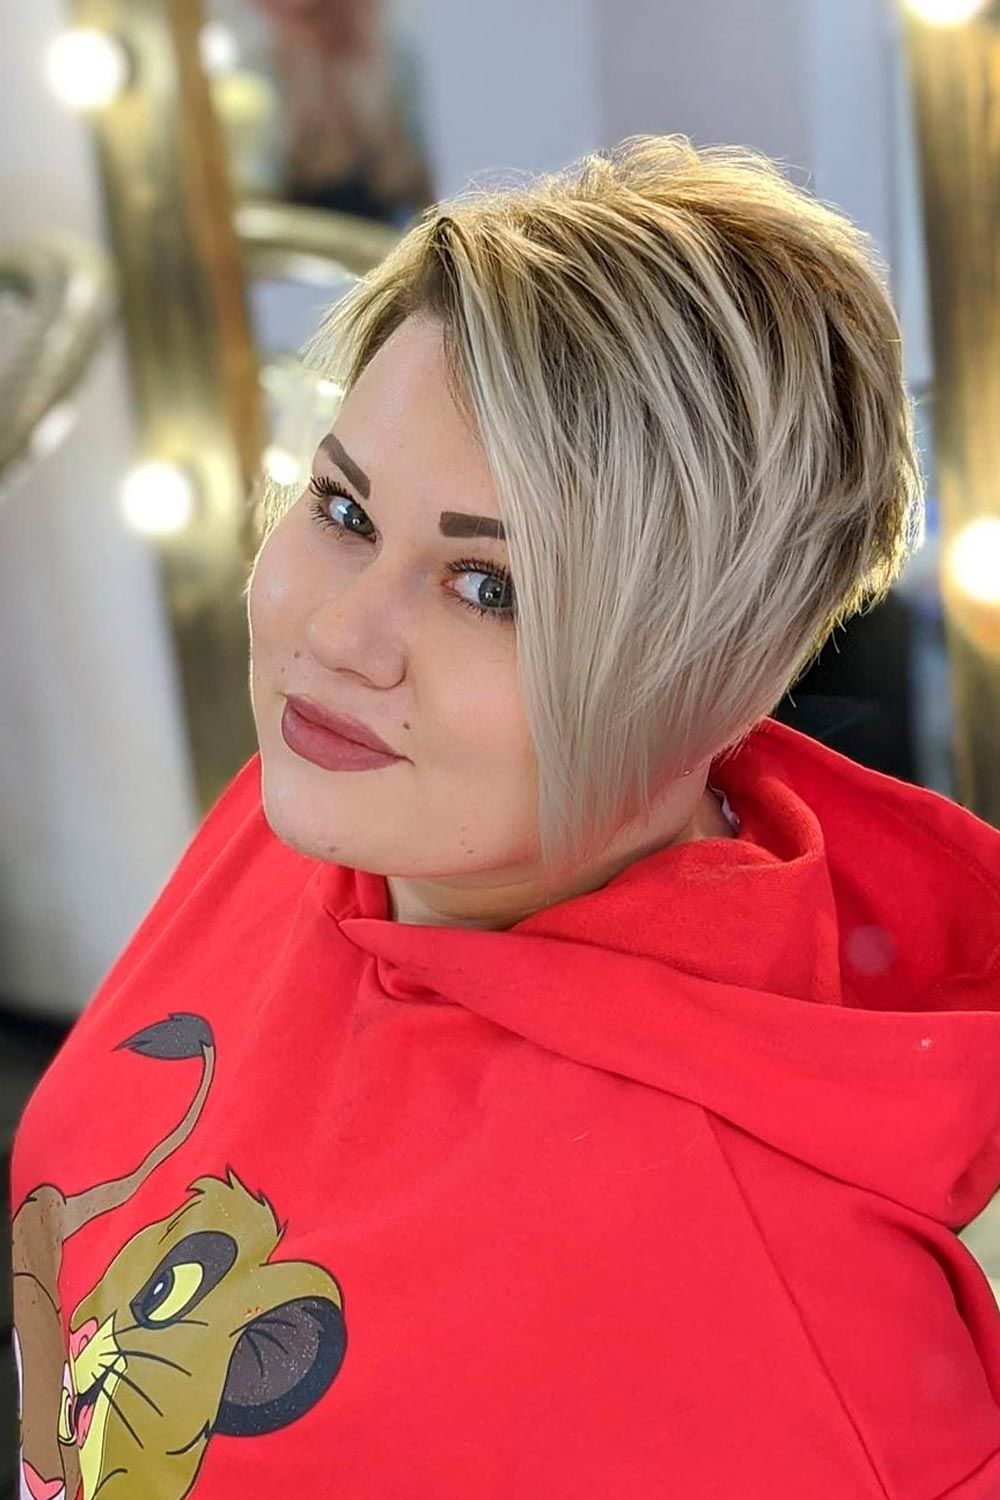 Pixie With Long Bang, long haircuts for women over 40, pixie haircuts for women over 40, shoulder length haircuts for women over 40